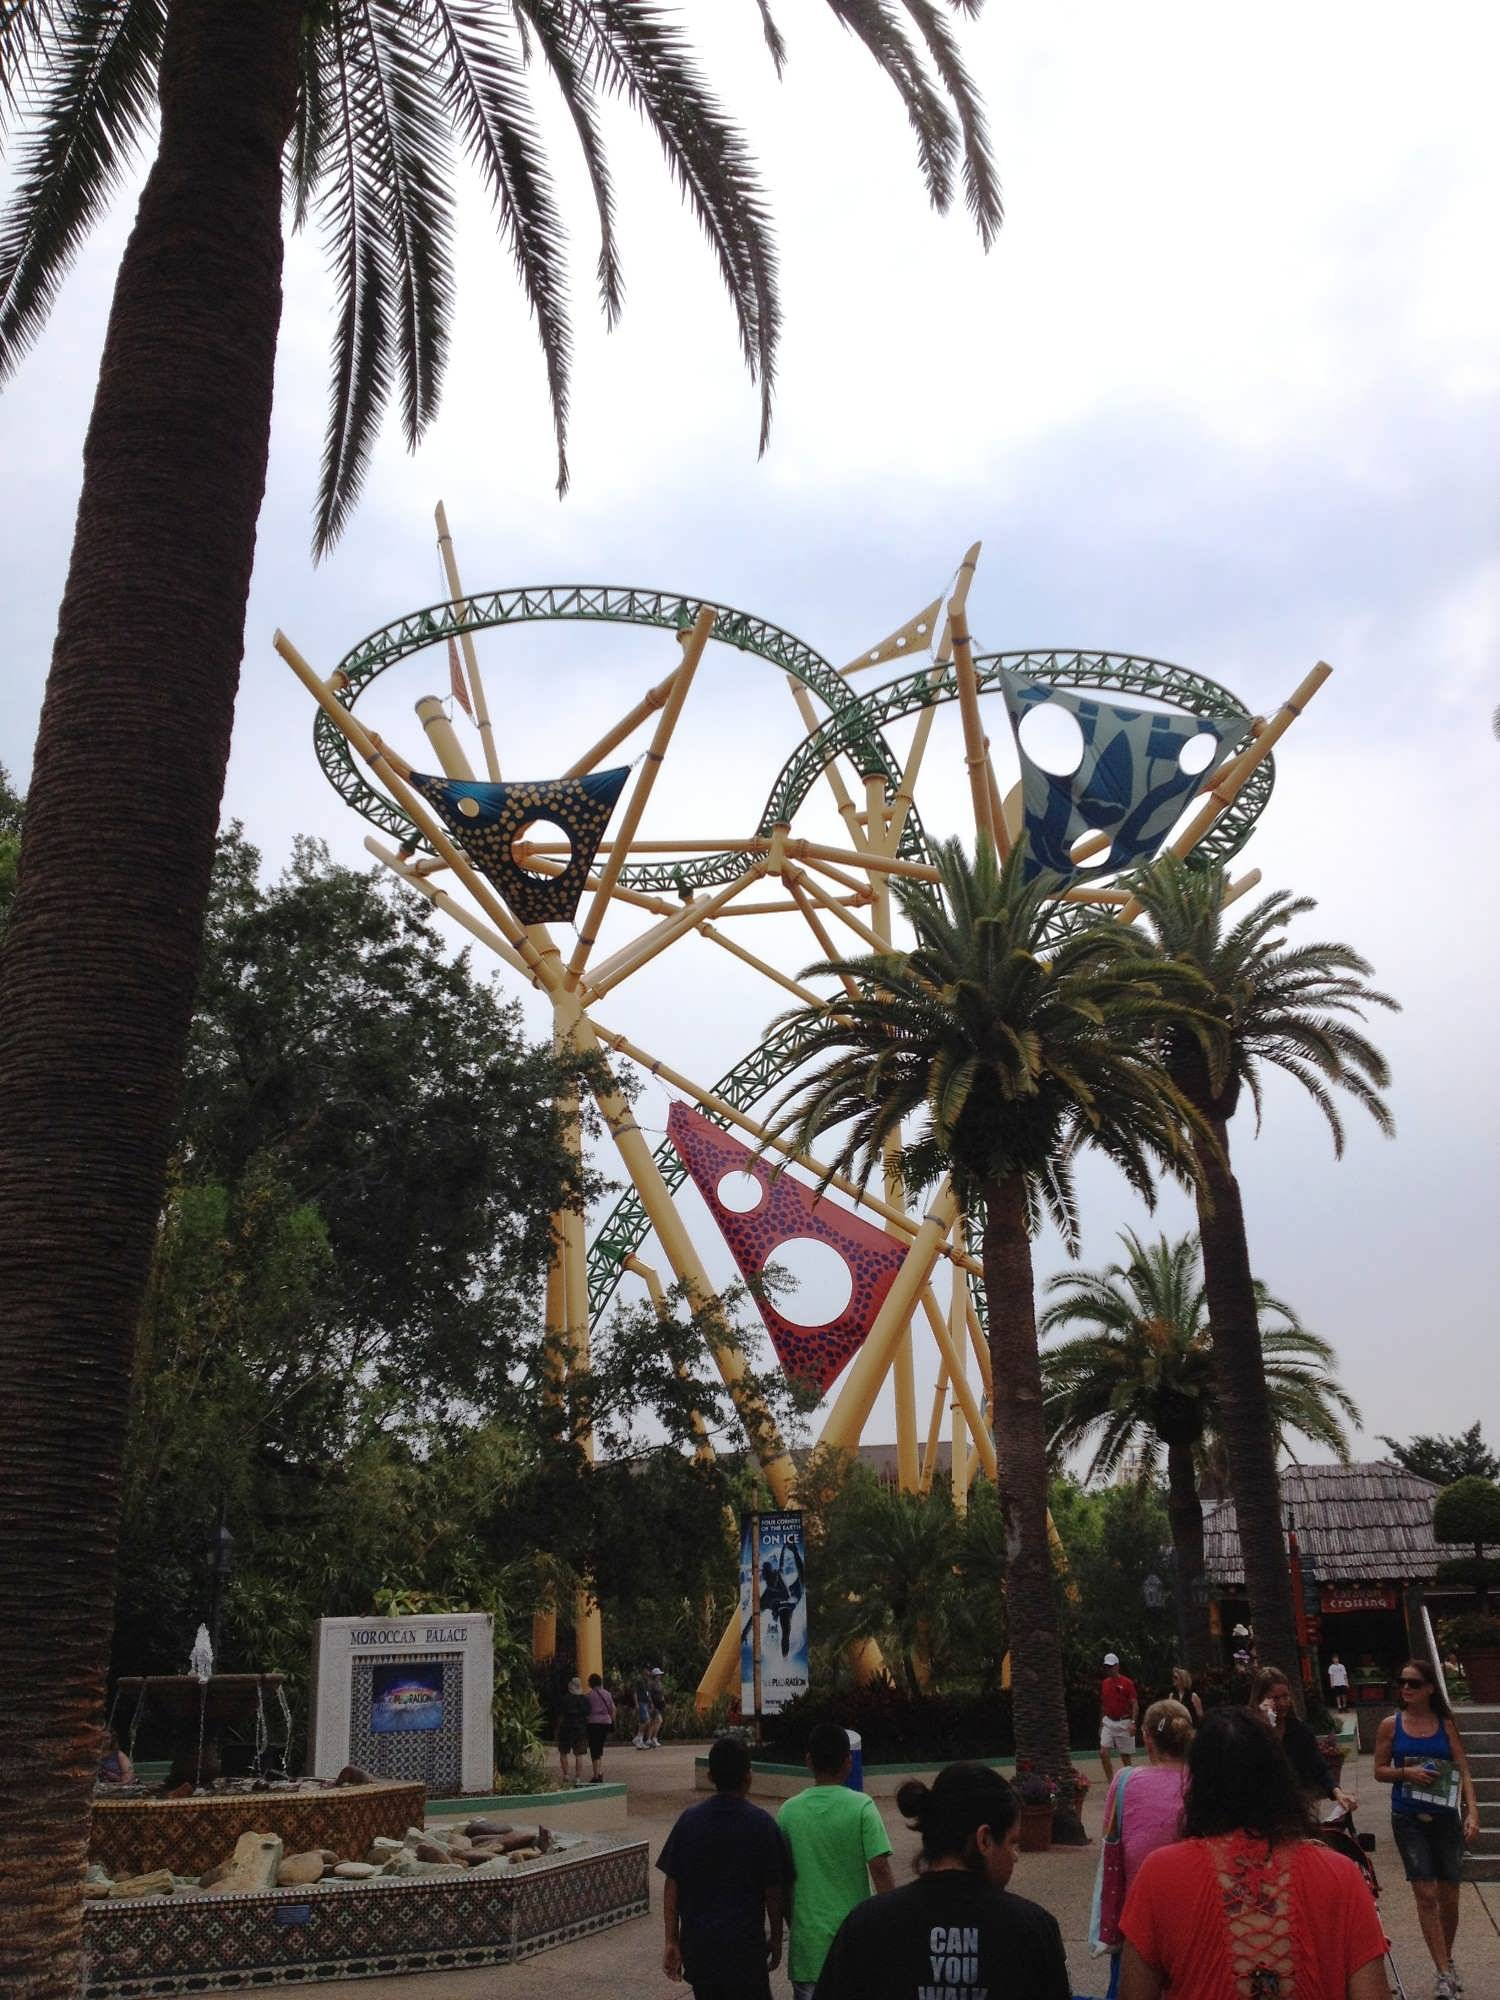 Busch Gardens Tampa How to ride every major ride and see every